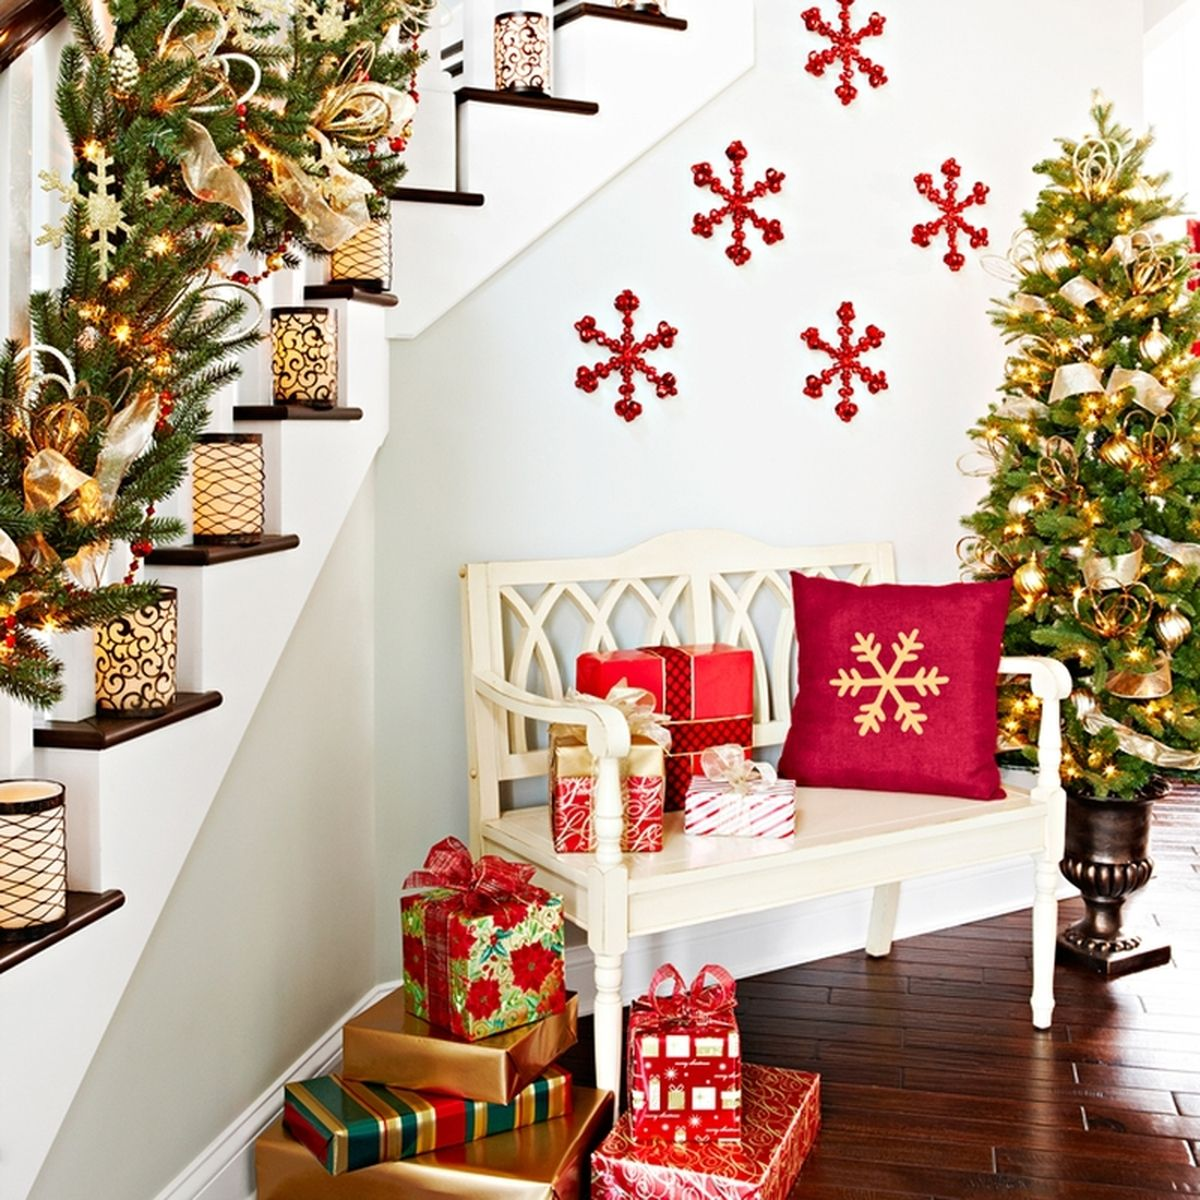 luminaria staircase for christmas christmas decorations indoor sherman financial group - Christmas Decorations Indoor